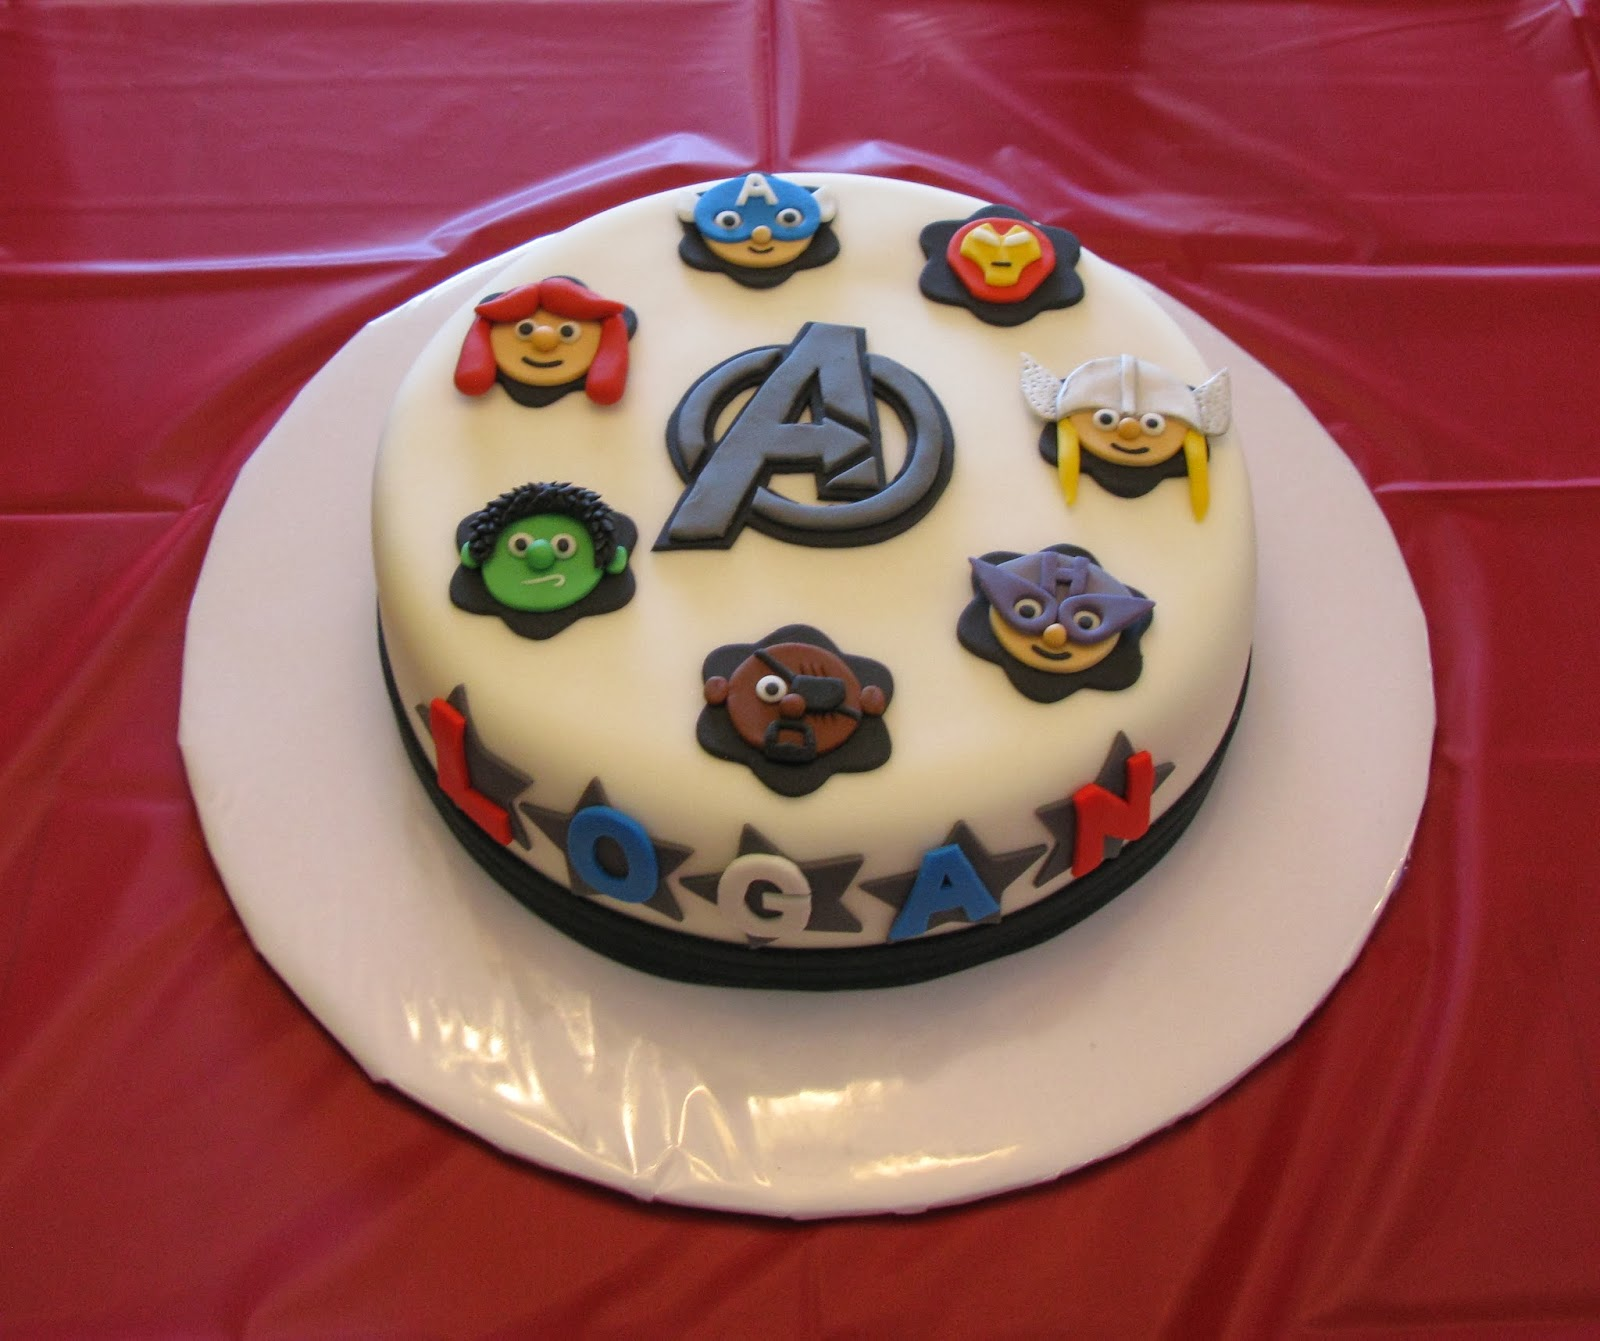 Wick D Cakes The Avengers